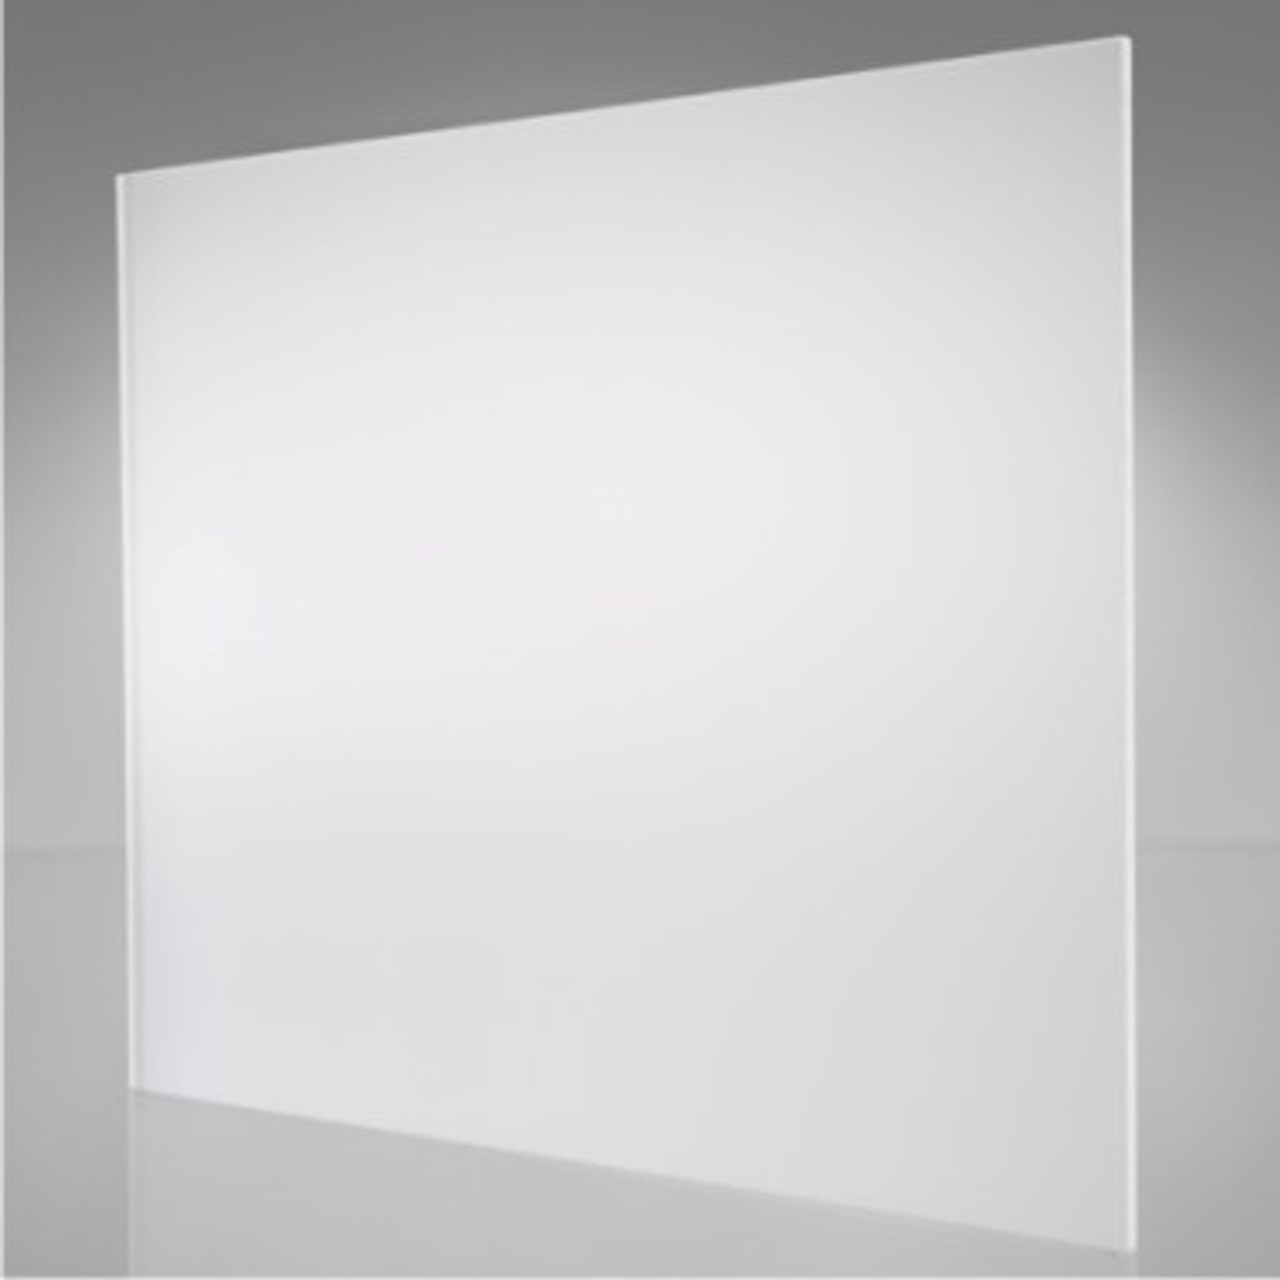 Acrylic Sheet P 95 Frosted Acrylic Sheet Sandblasted Acrylic Sheet